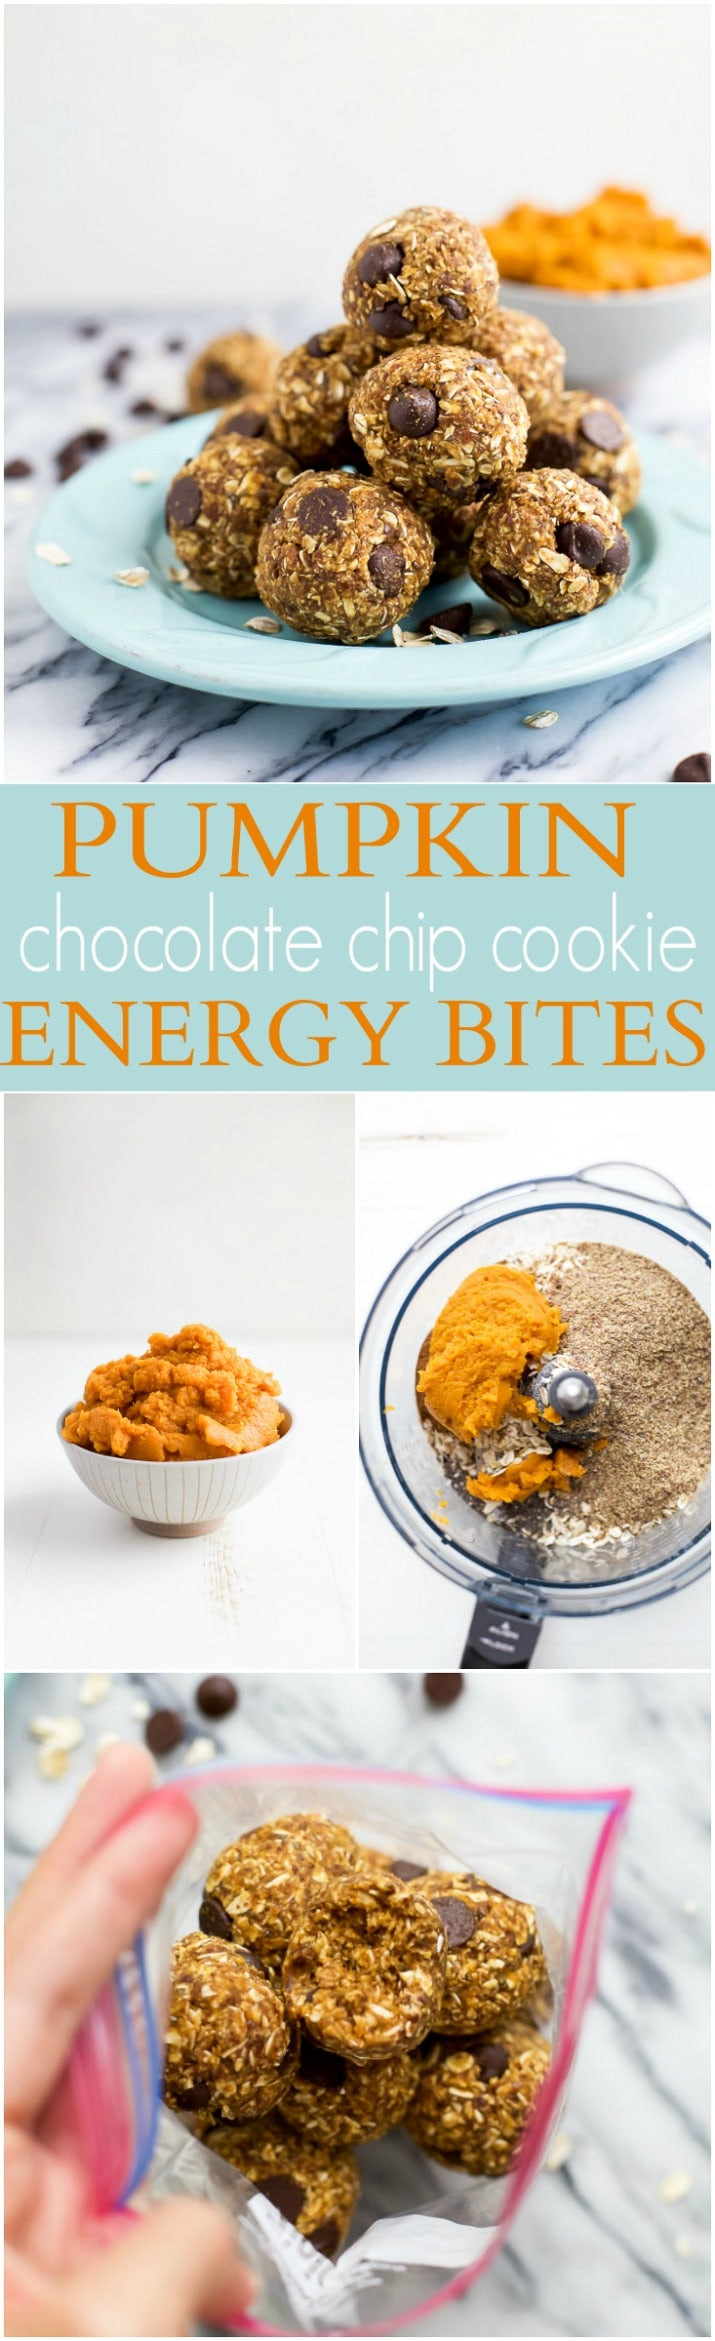 Healthy Midday Snacks  Pumpkin Chocolate Chip Cookie Energy Bites